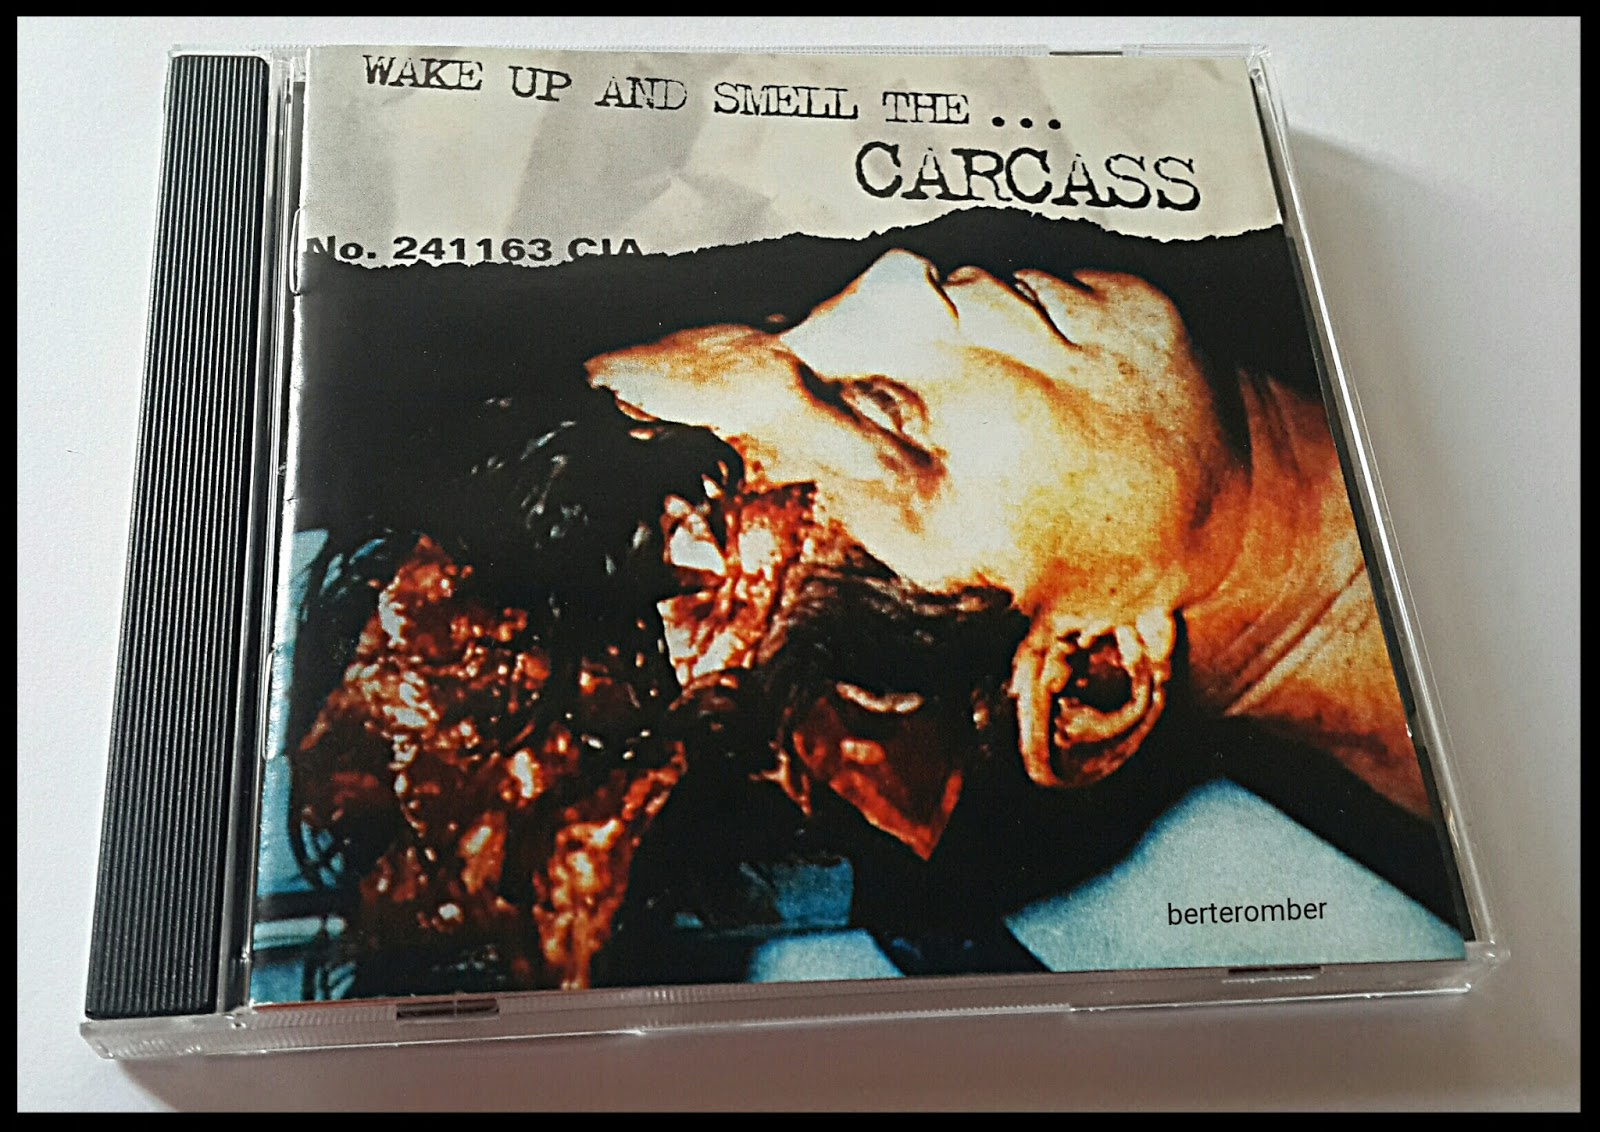 BERTEROMBER: Wake Up and Smell the Carcass